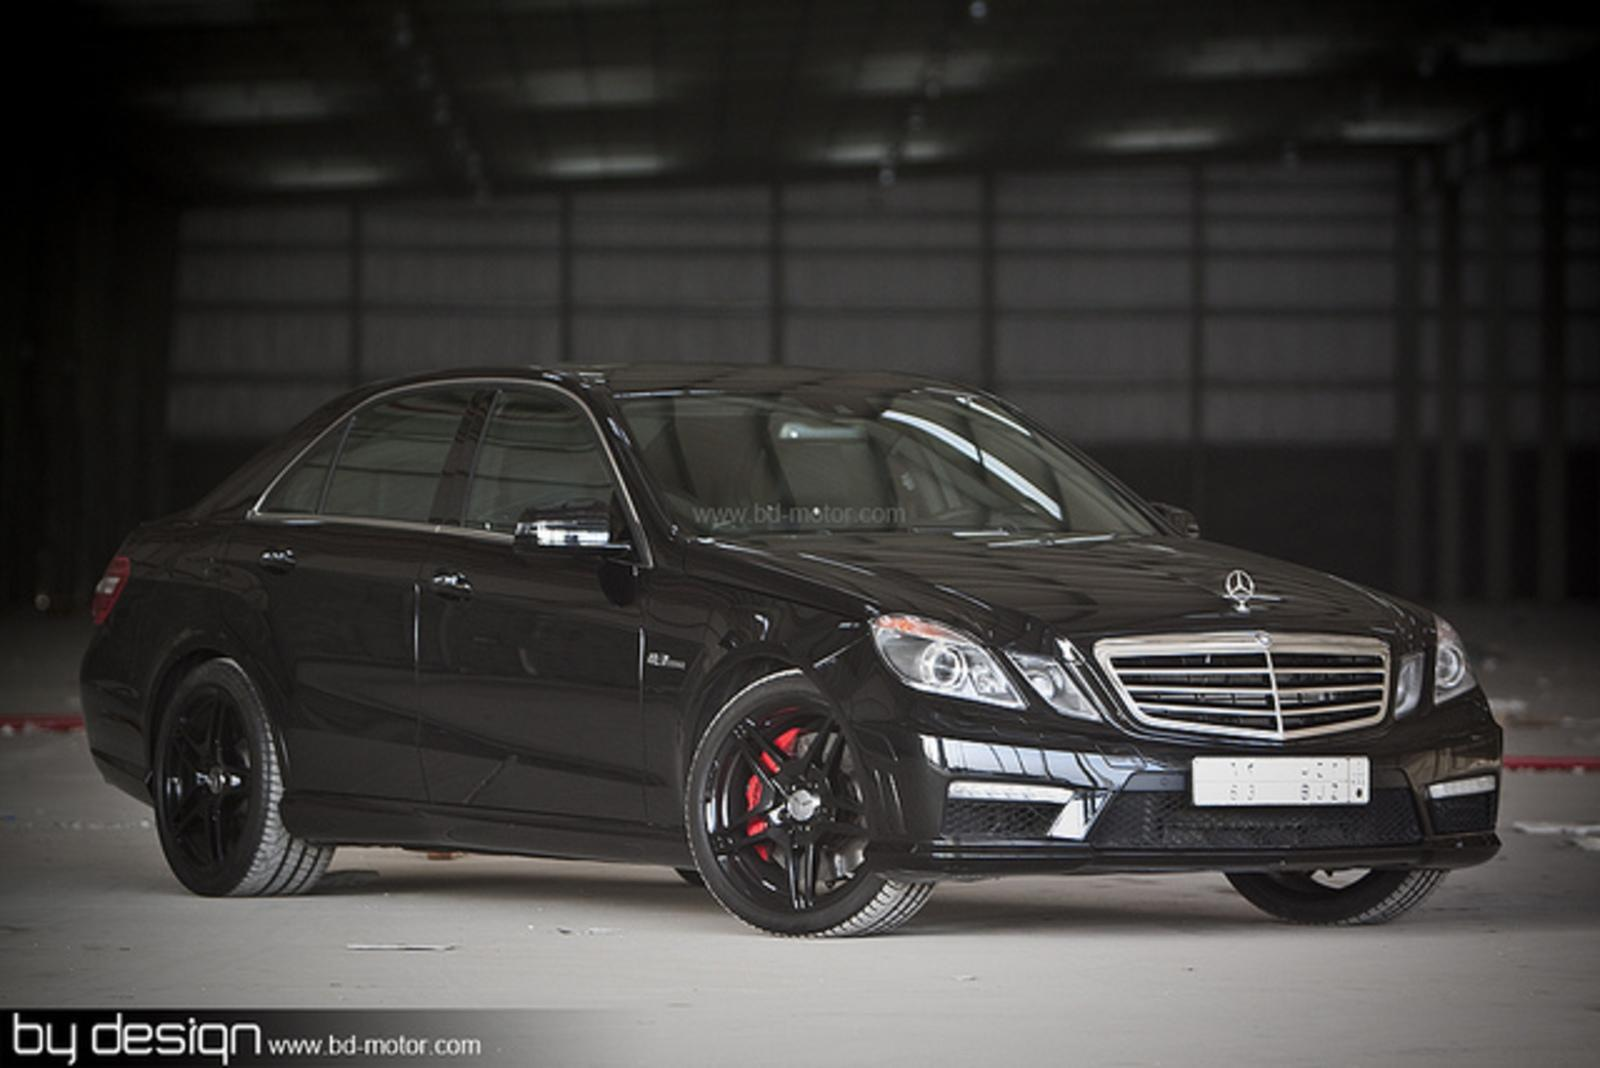 2011 Mercedes E63 Amg By Bd Motor Review Top Speed